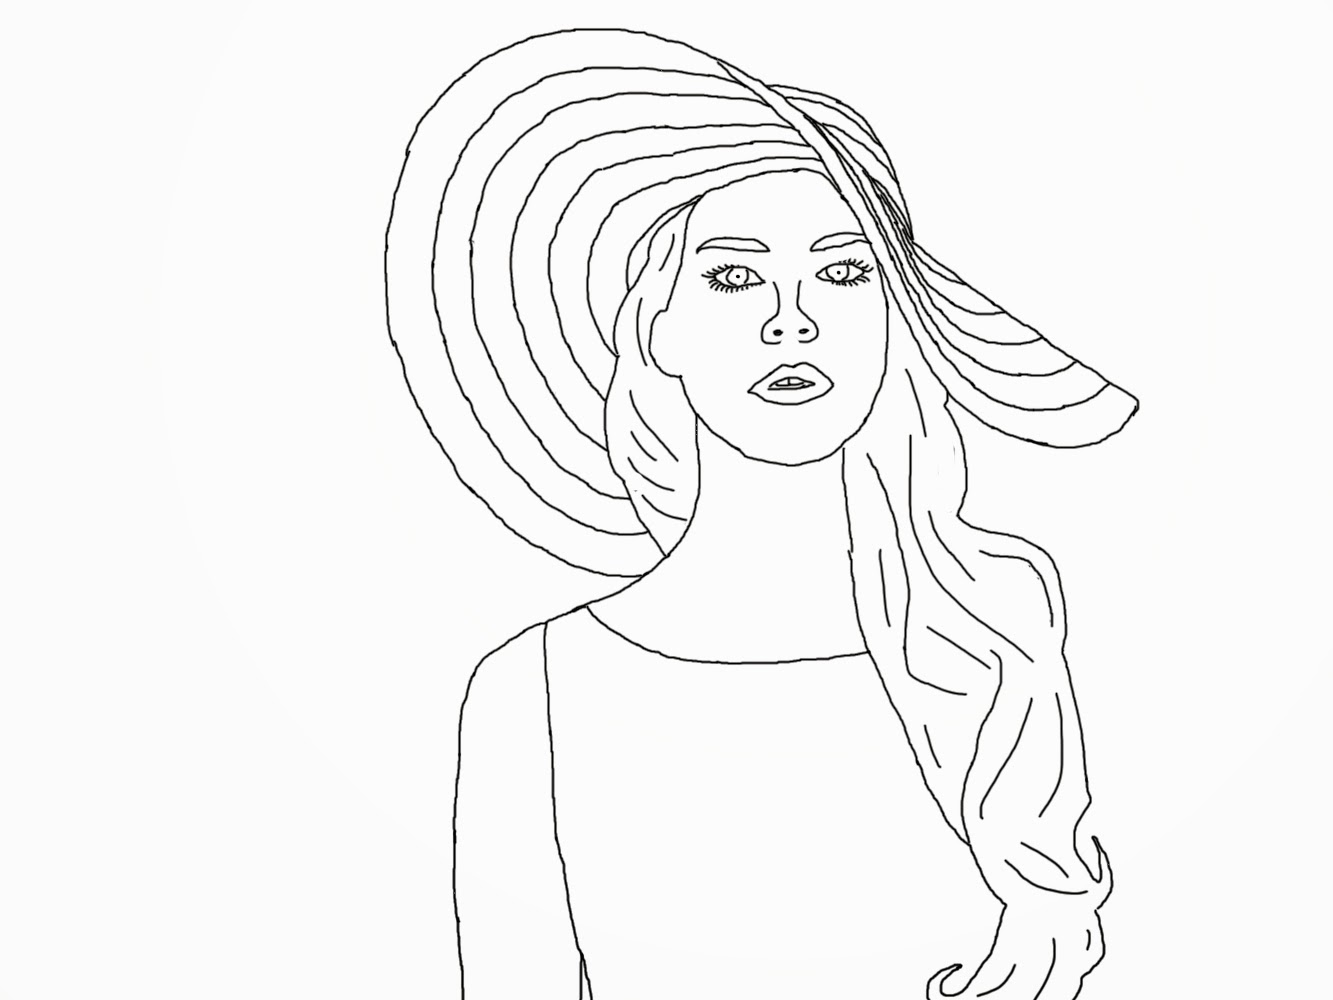 1333x1000 Lana Del Rey Coloring Pages Download Coloring For Kids